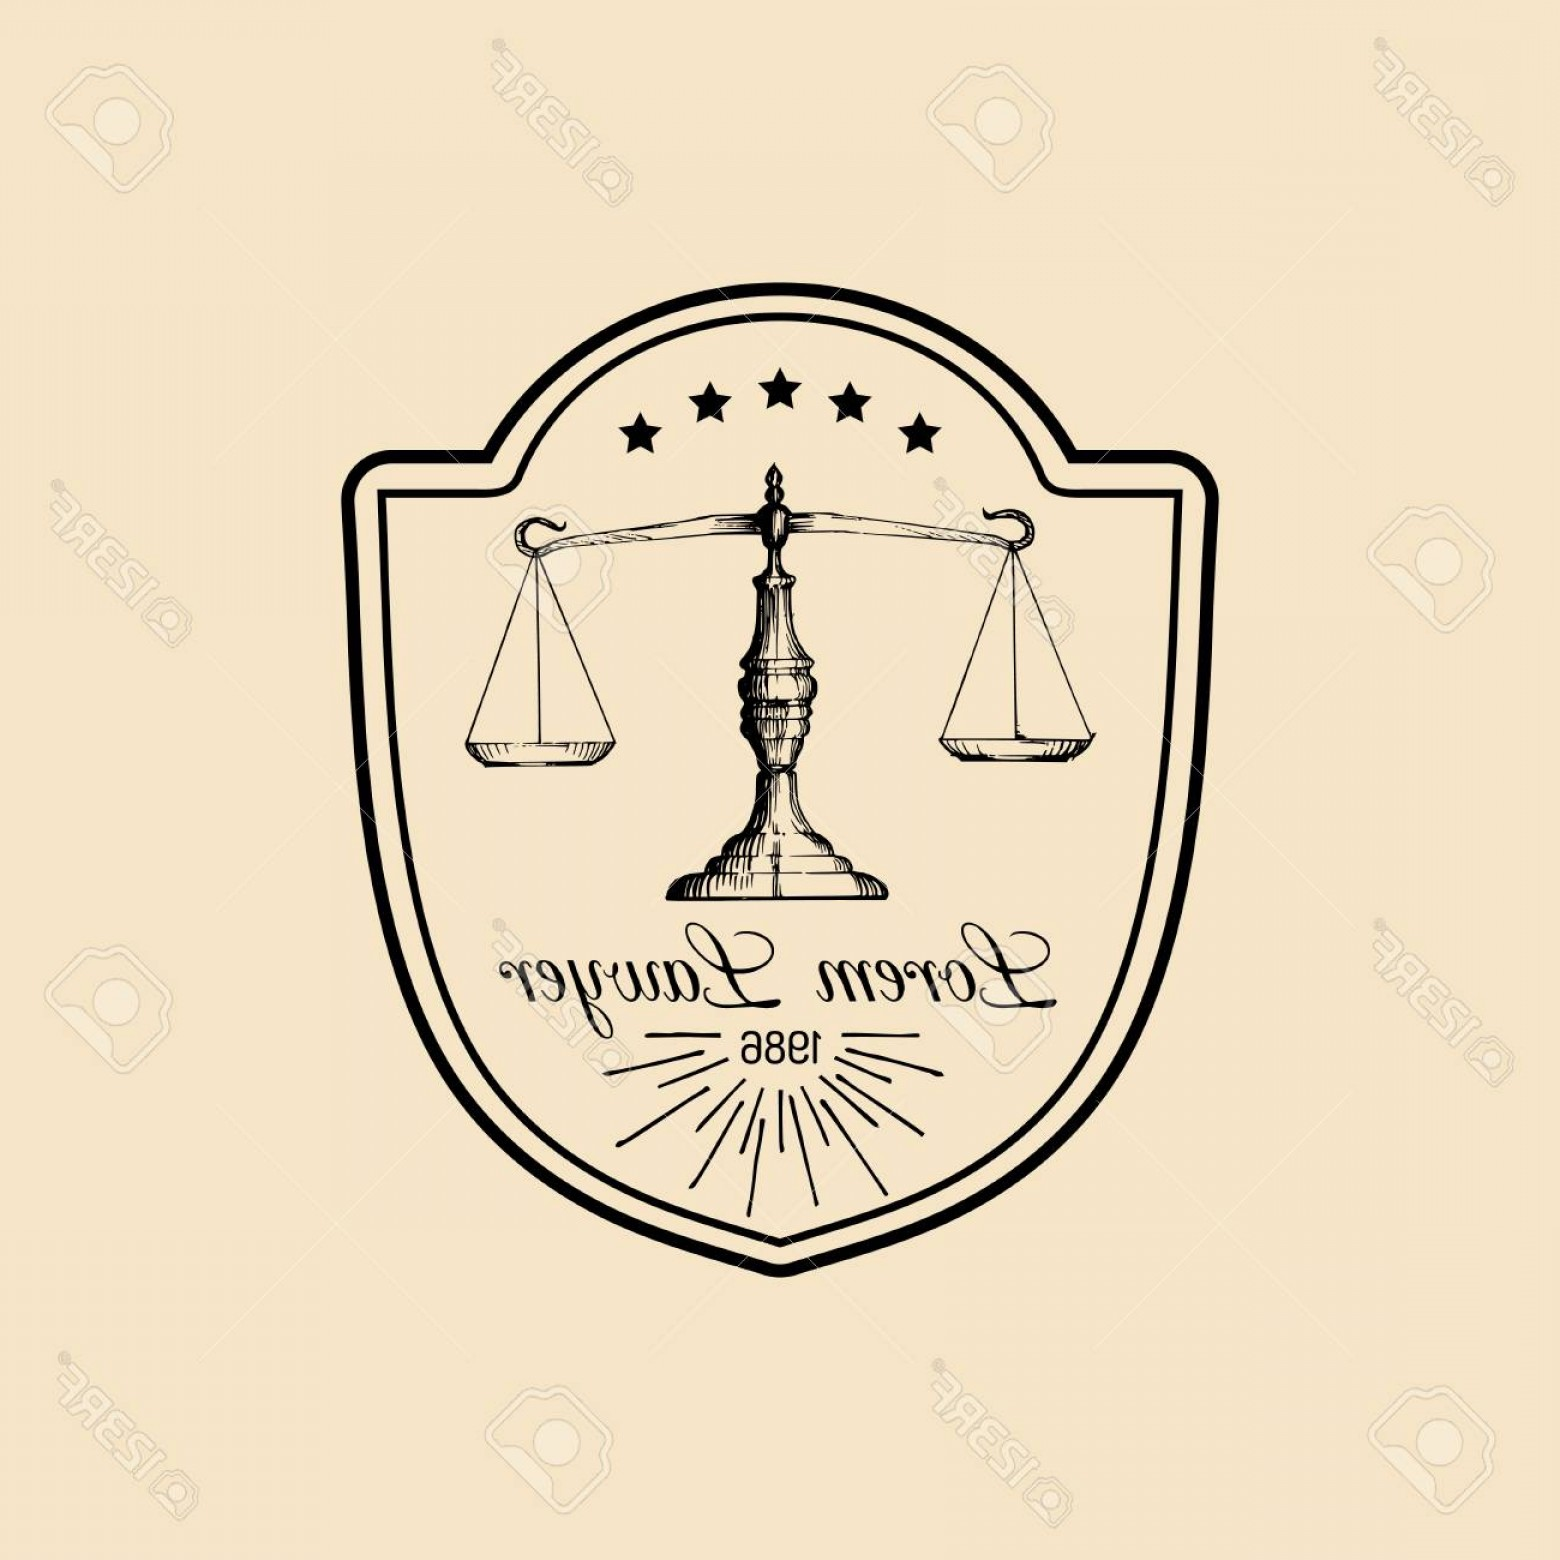 Vintage Sign Vector Attorney-Law: Photostock Vector Law Office Logo With Scales Of Justice Illustration Vector Vintage Attorney Advocate Label Juridical